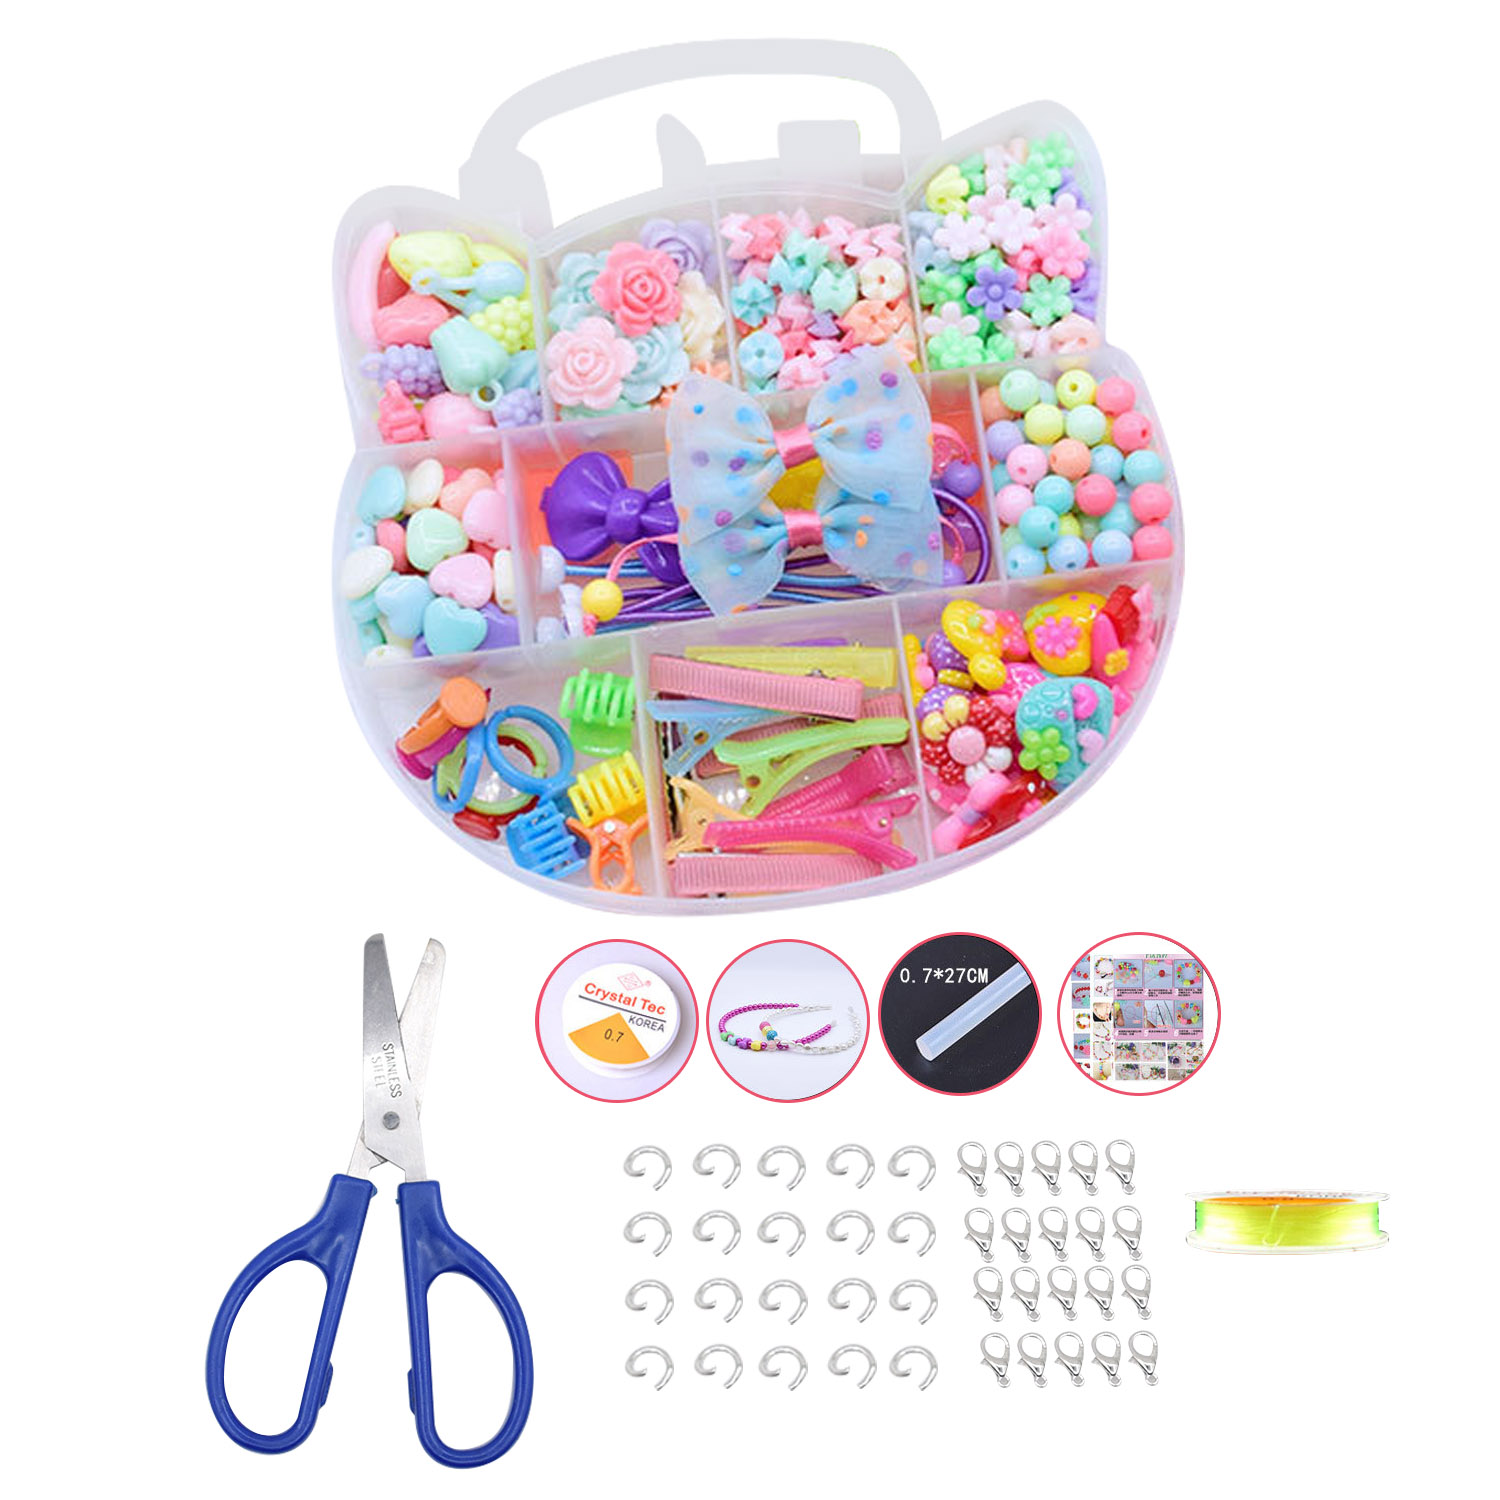 243PCS Different Types Plastic DIY Beads Set Kit for Kids Children Boys  Girl Adults Jewelry Bracelet Necklace Making